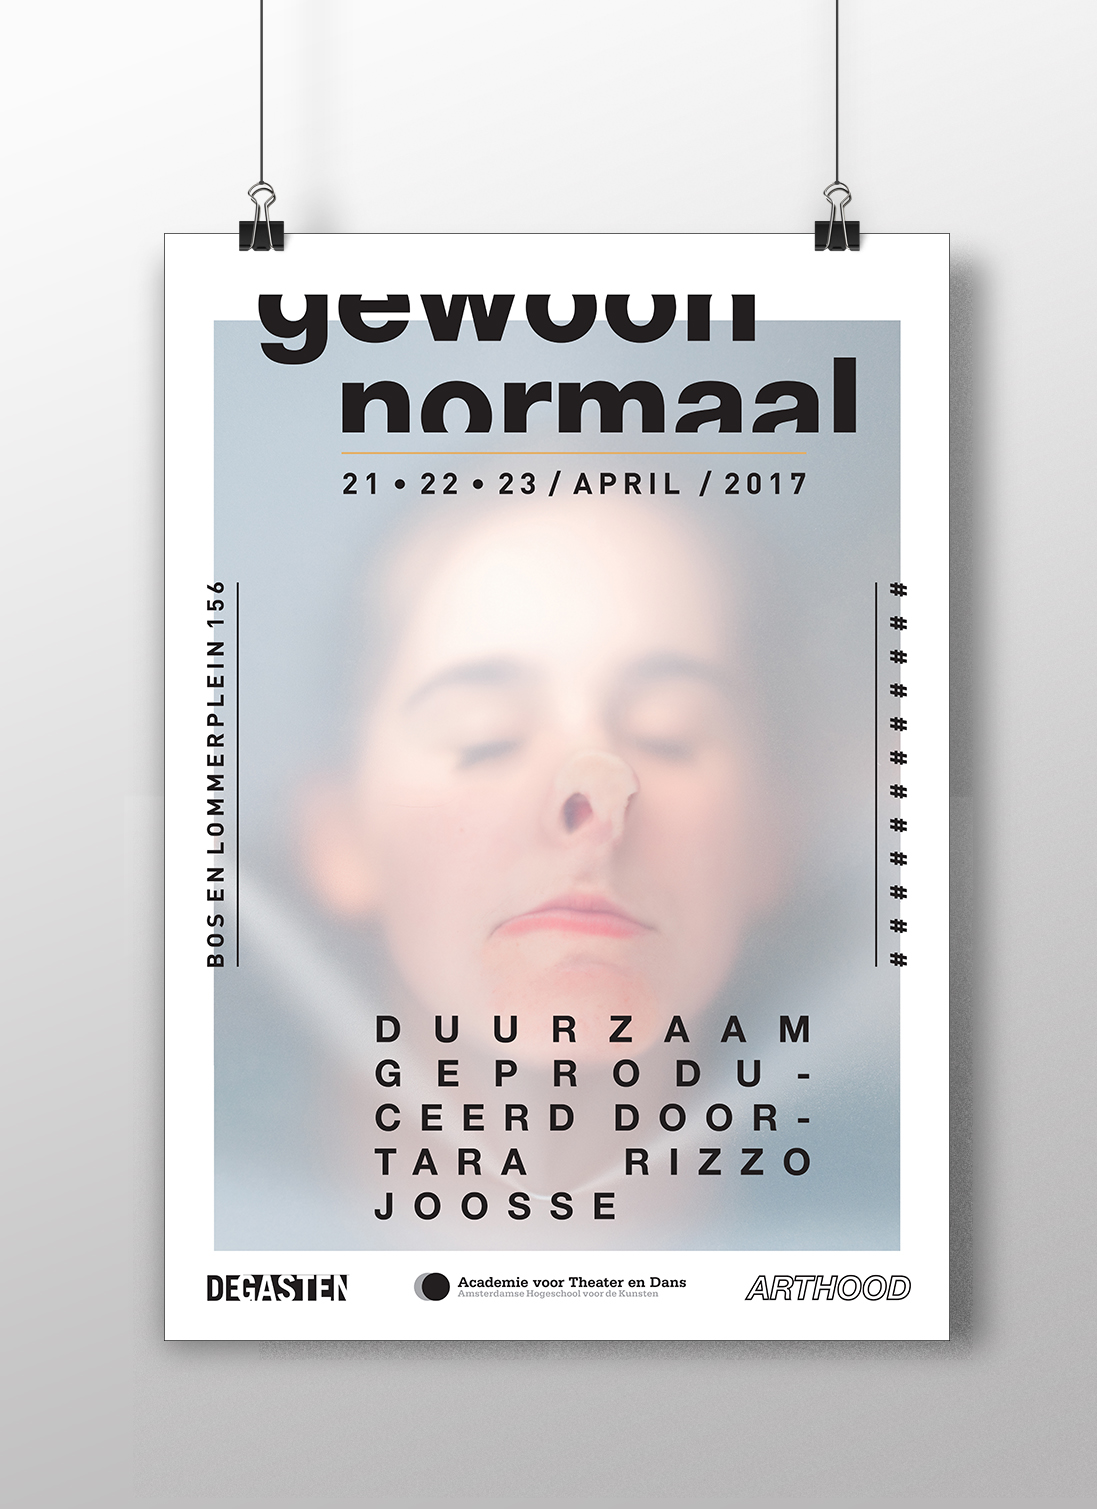 ADMIRAAL  GRAPHIC DESIGN